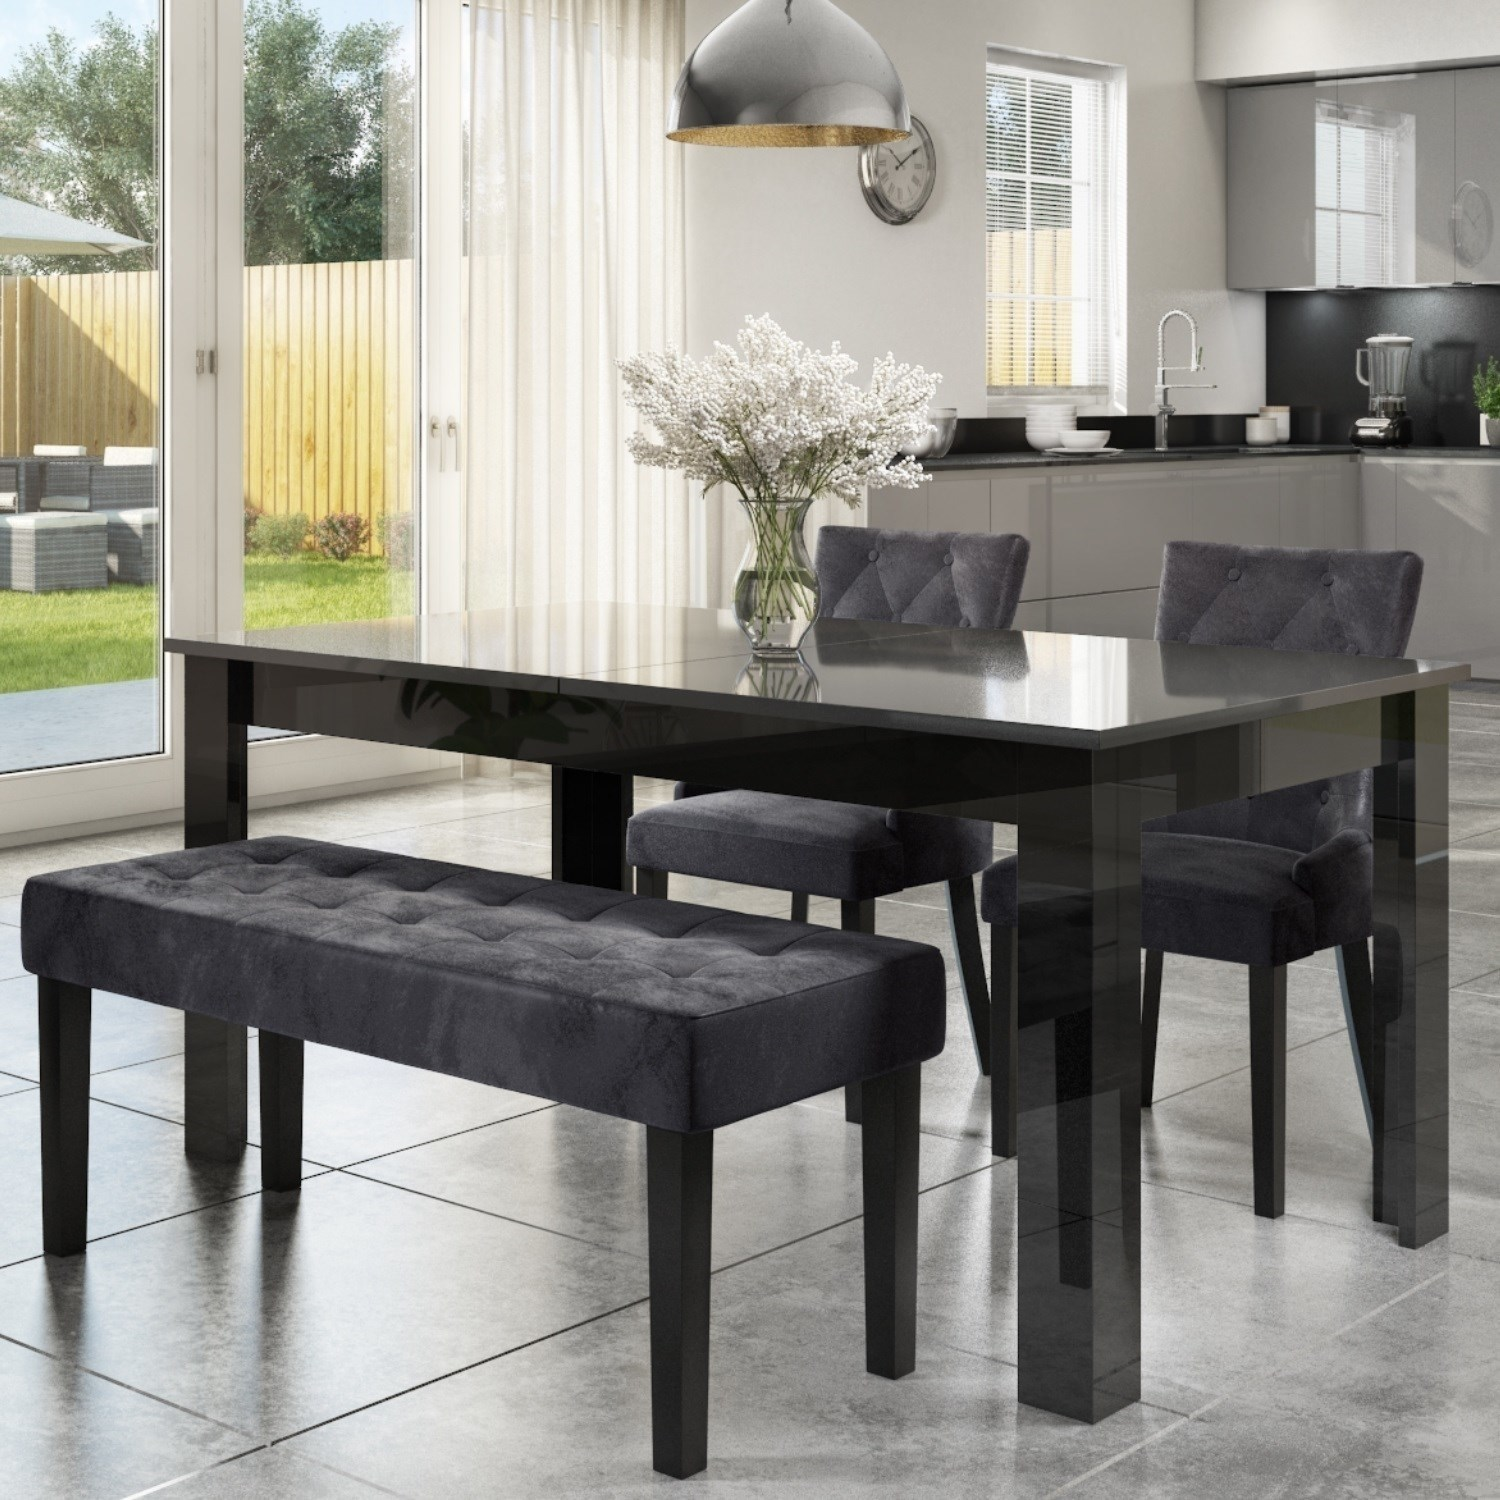 black and gray dining table